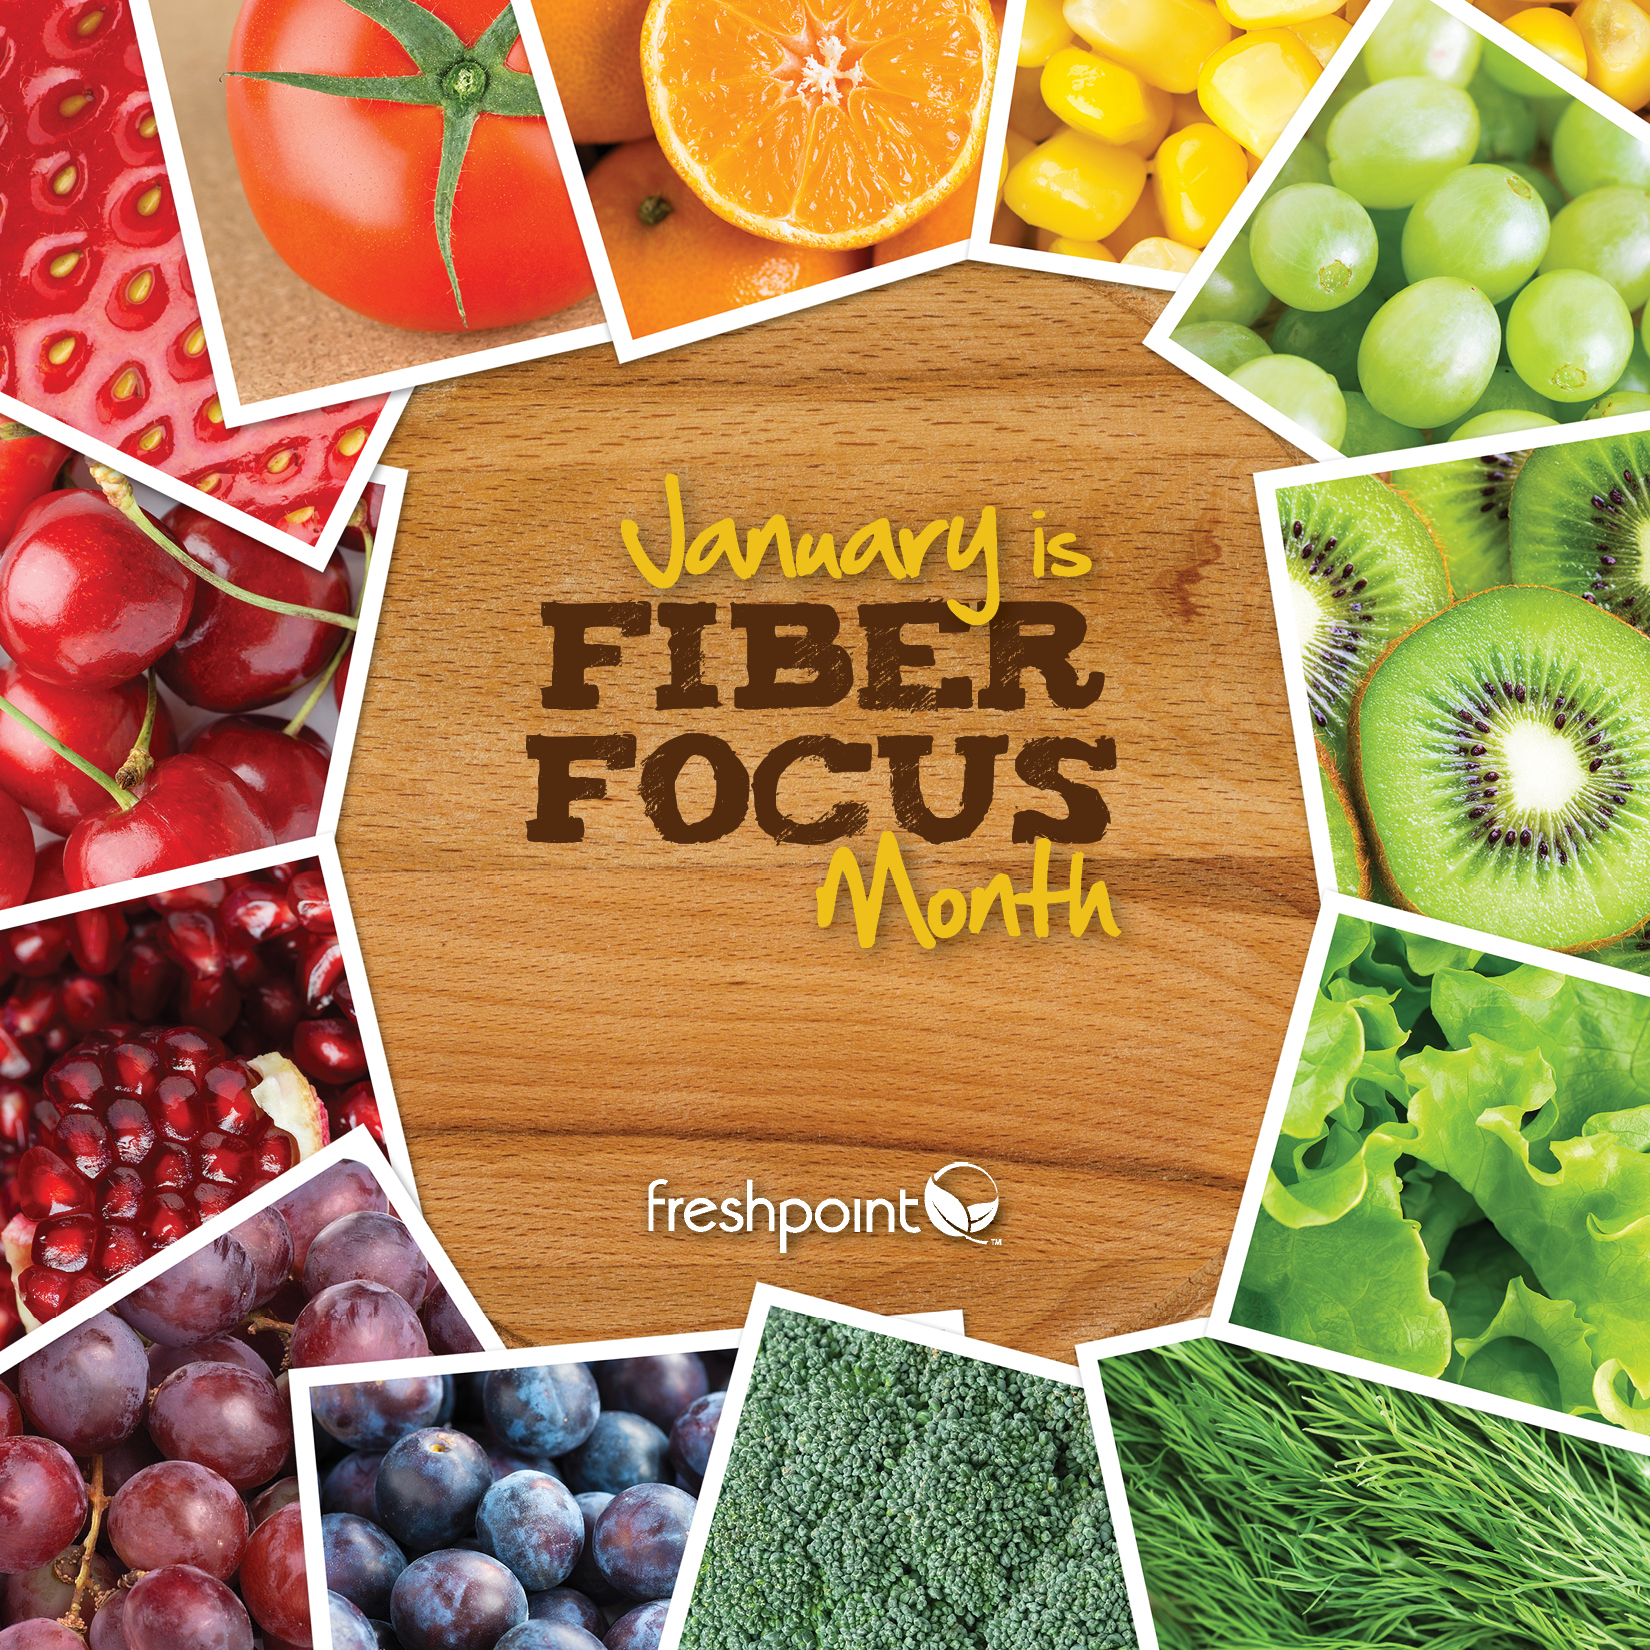 January is Fiber Focus Month